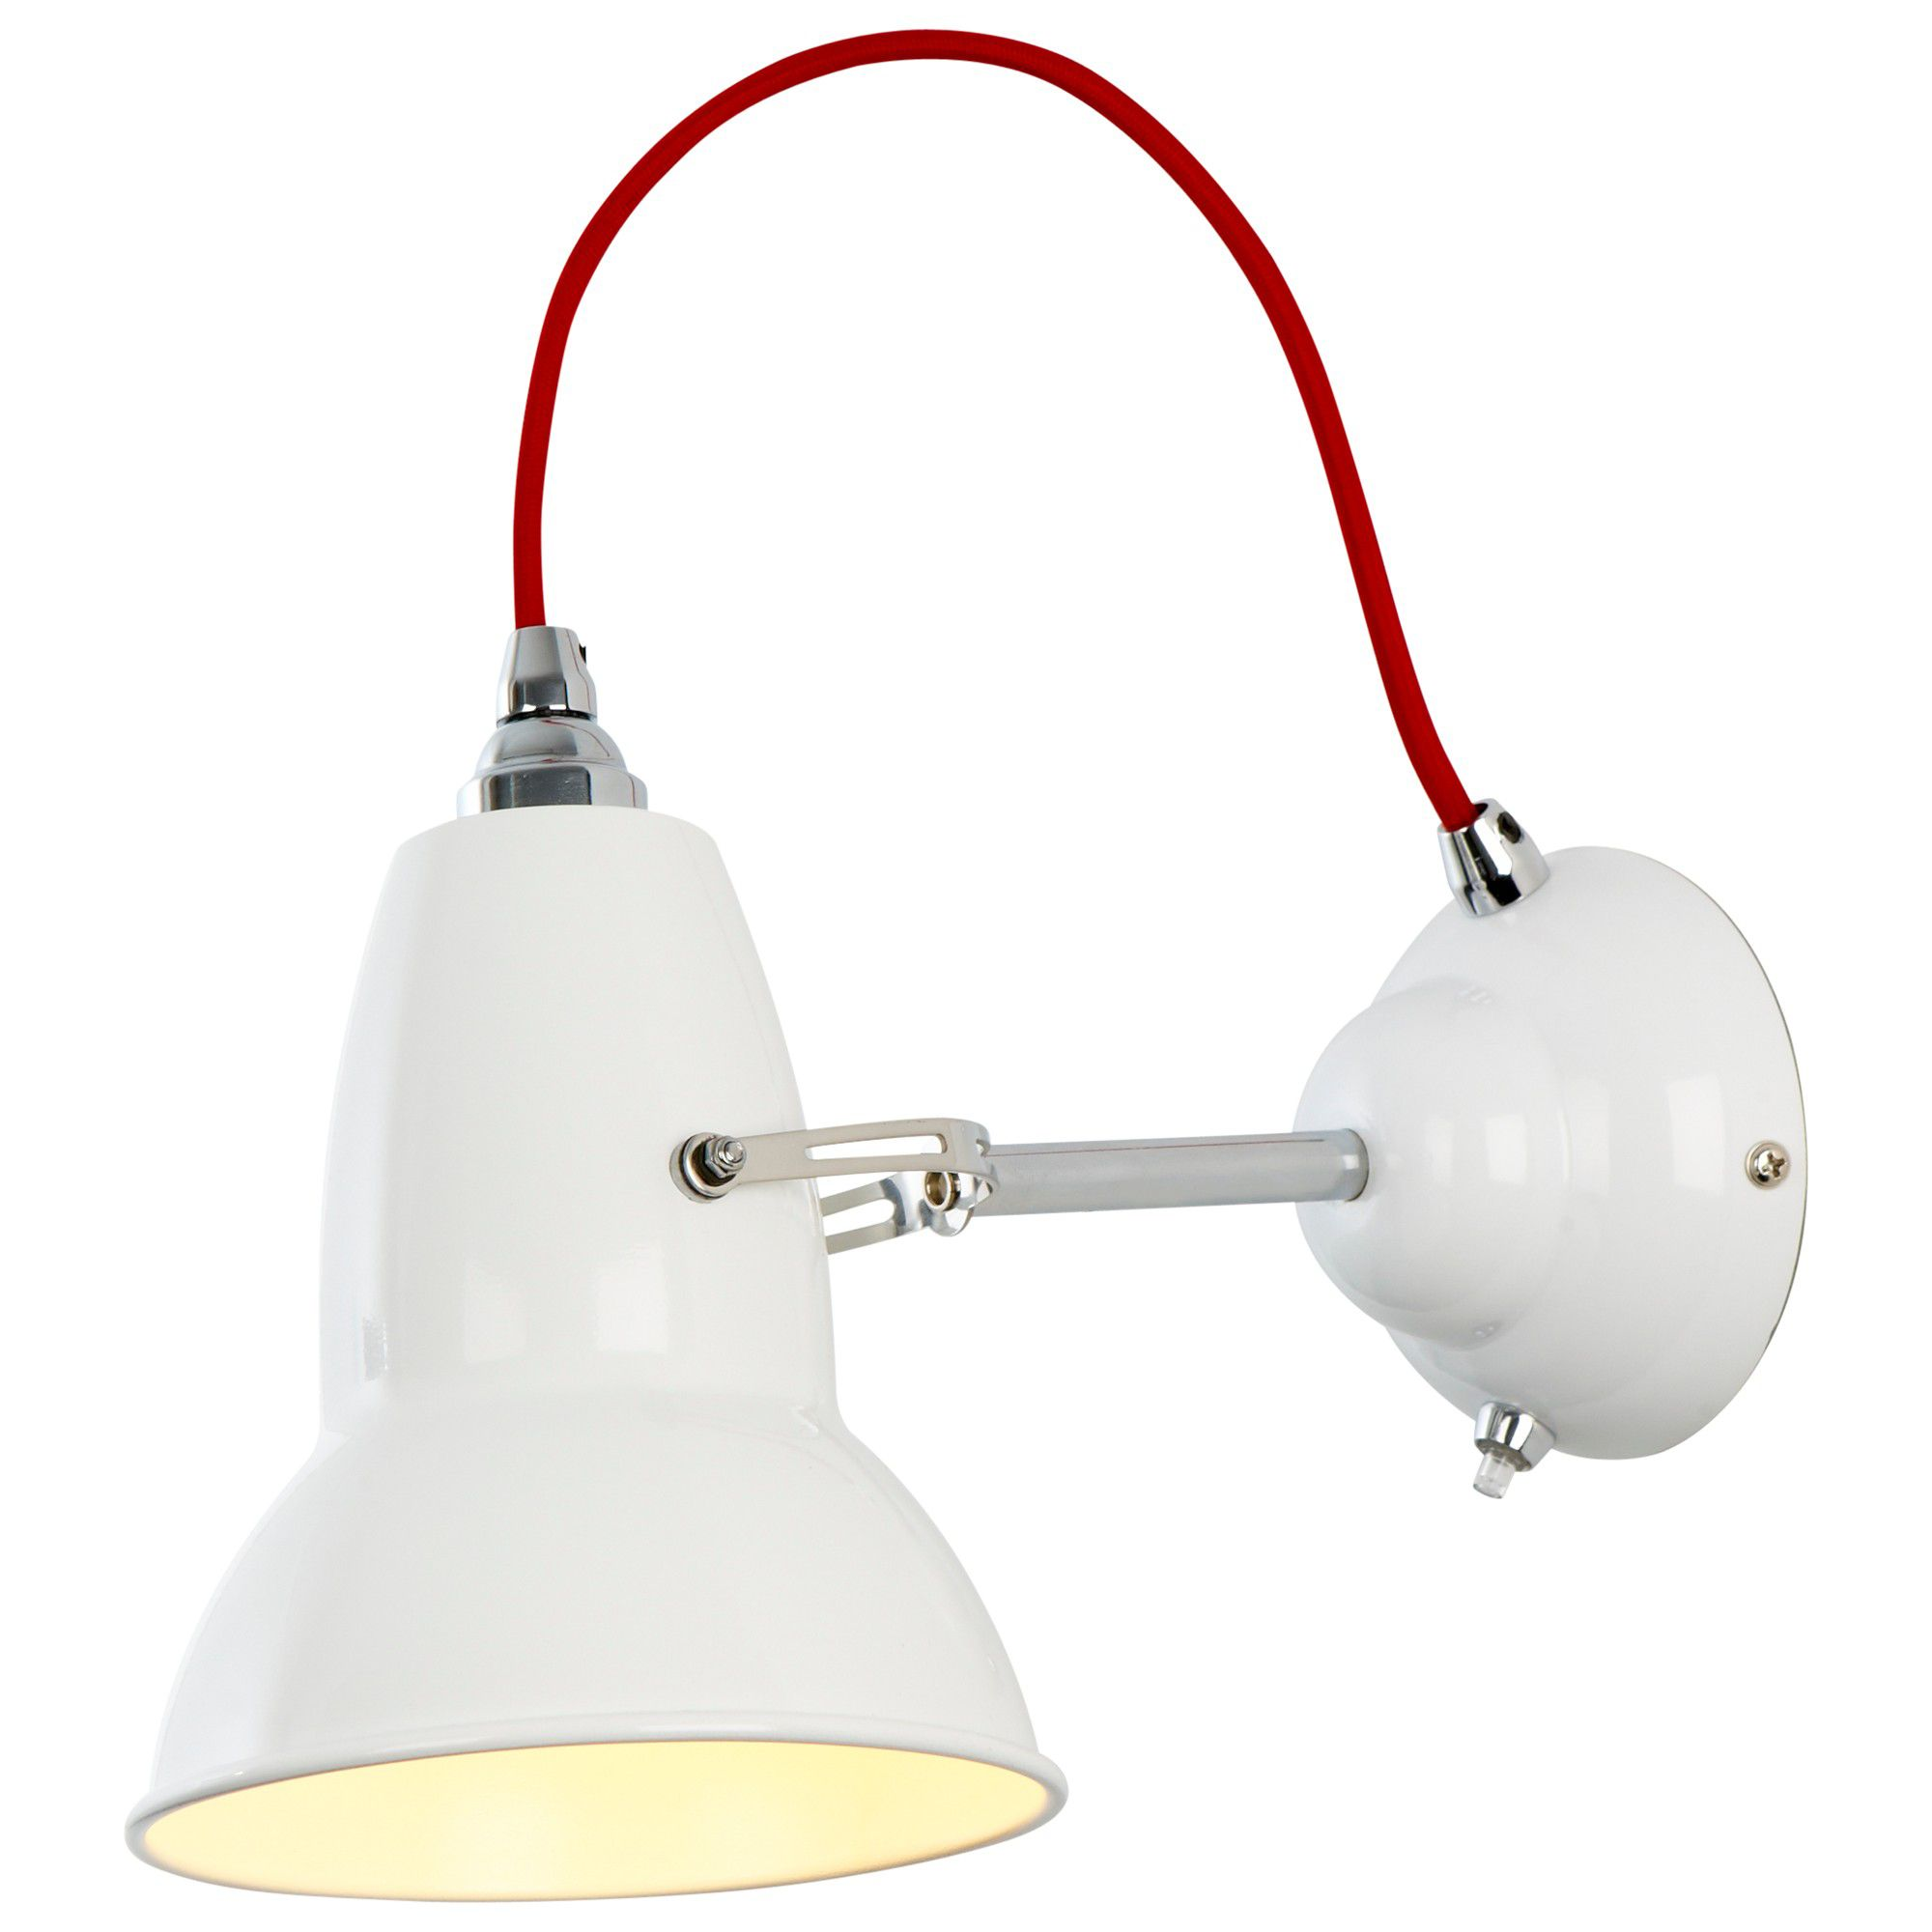 Buy Anglepoise Duo Wall Light, Alpine White with Red Braided Cable John Lewis